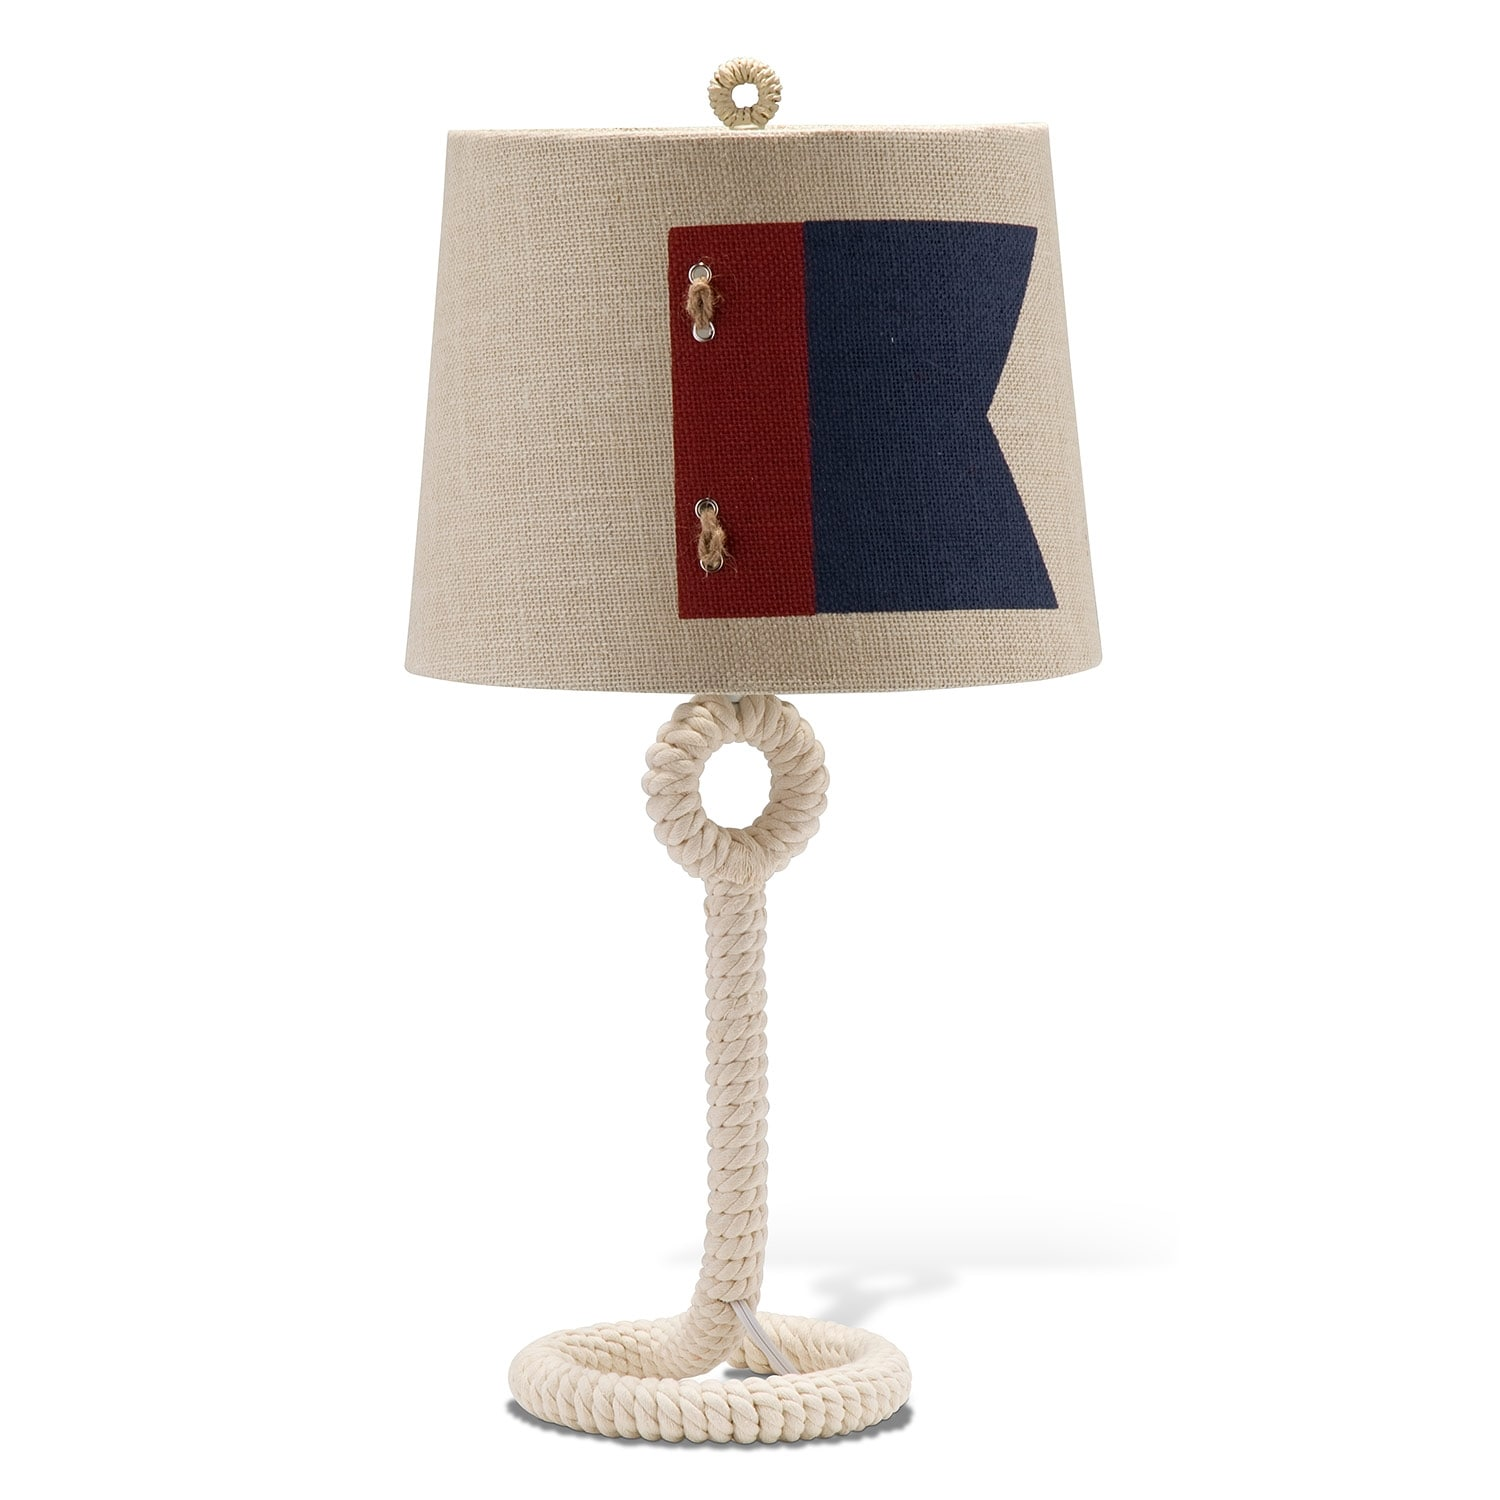 nautical lighting table lamp value city furniture. Black Bedroom Furniture Sets. Home Design Ideas